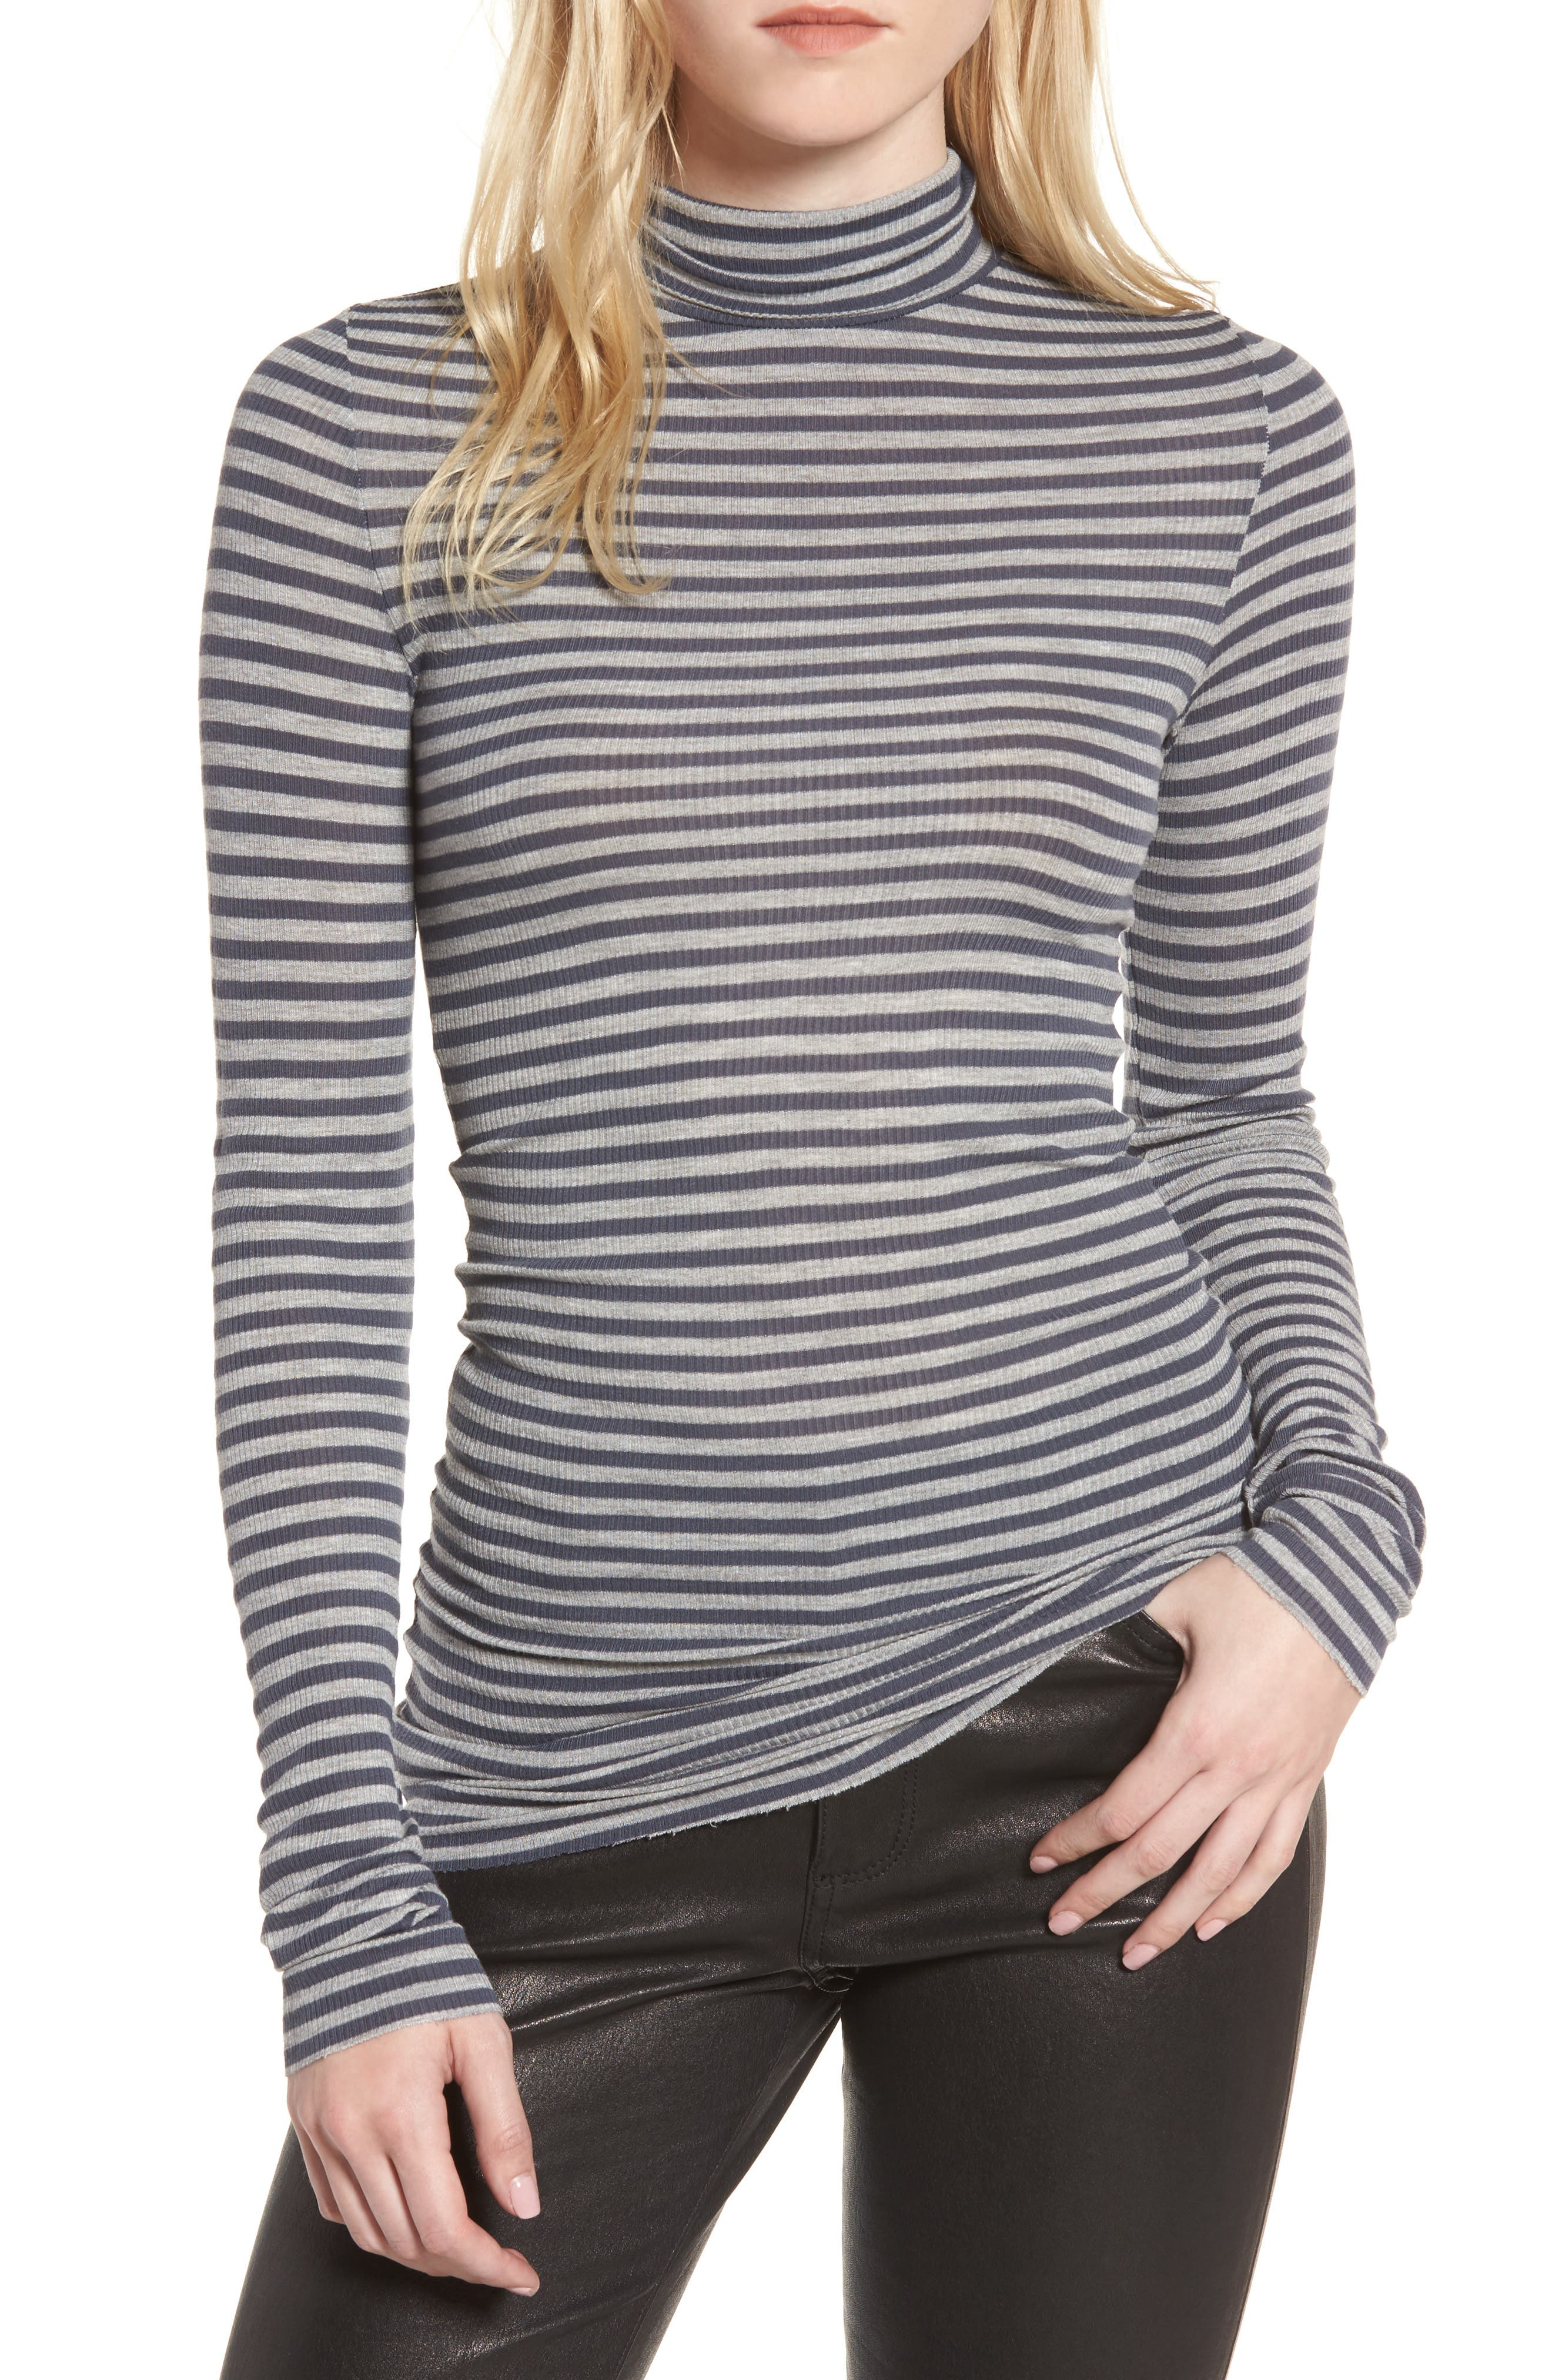 Jill Turtleneck,                             Main thumbnail 1, color,                             Blueberry/ Heather Grey